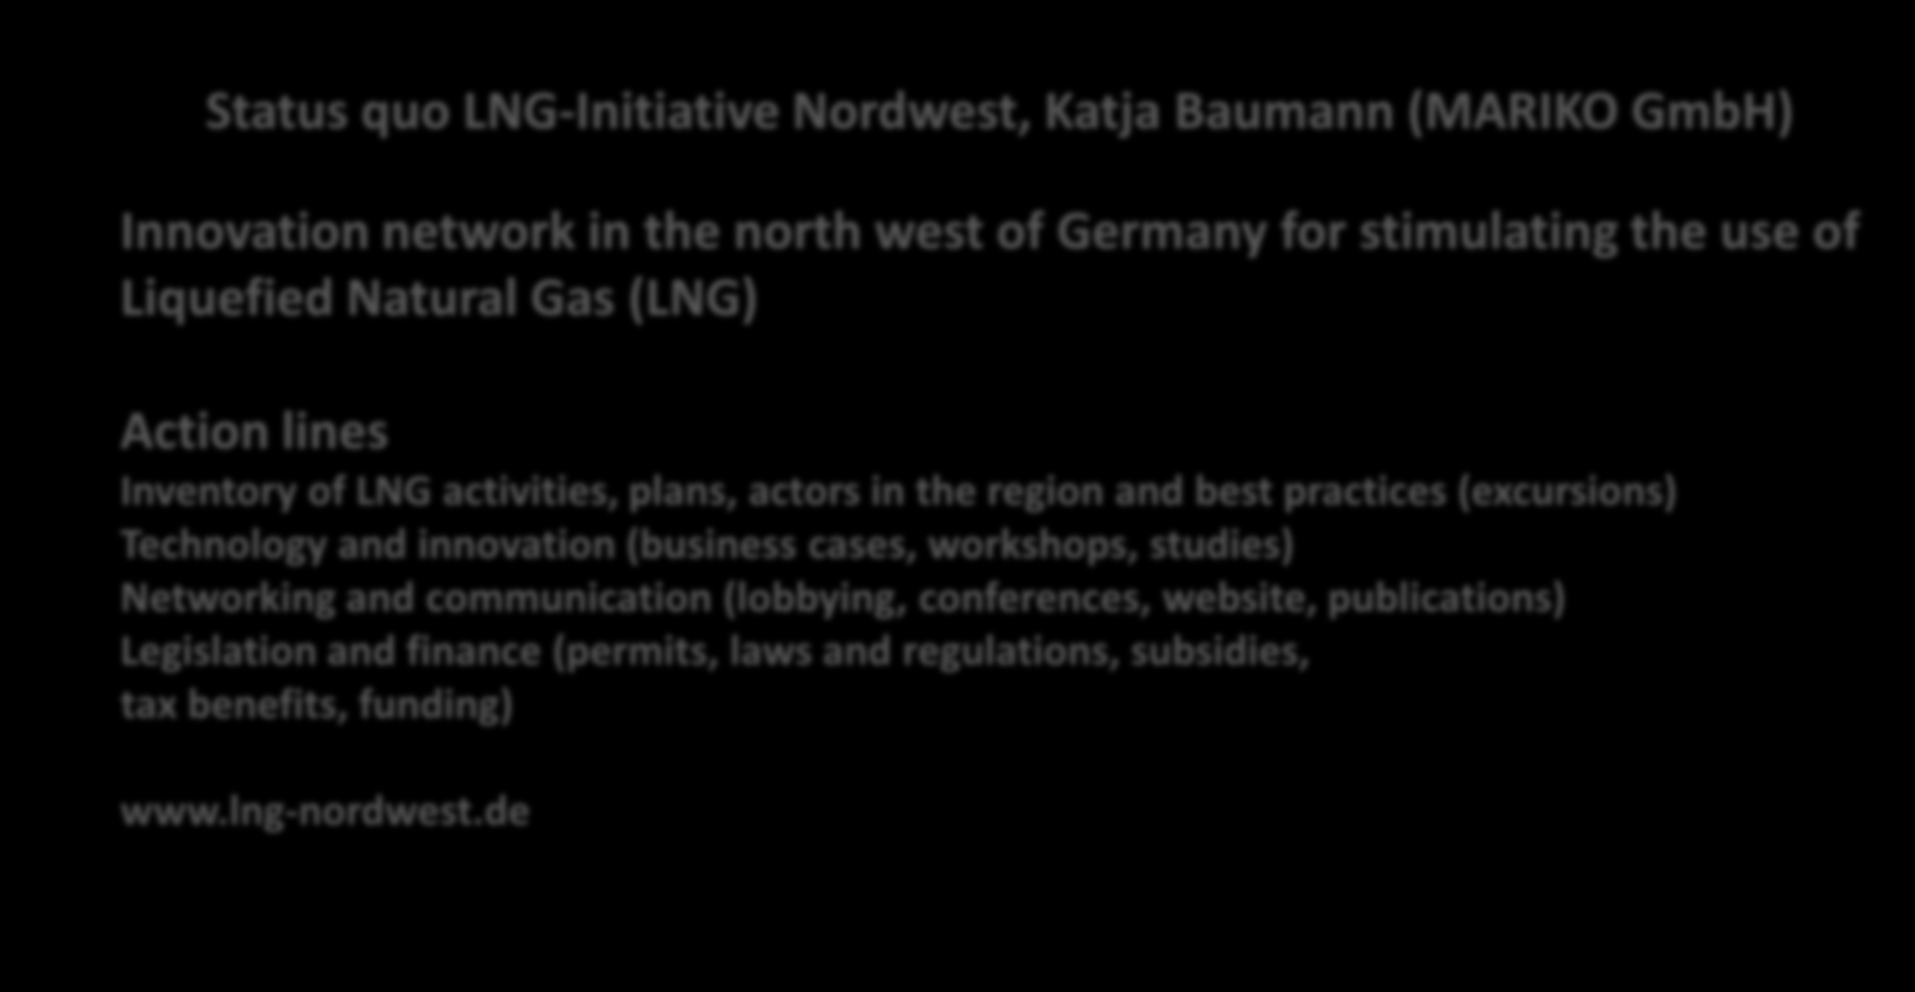 Status quo LNG-Initiative Nordwest, Katja Baumann (MARIKO GmbH) Innovation network in the north west of Germany for stimulating